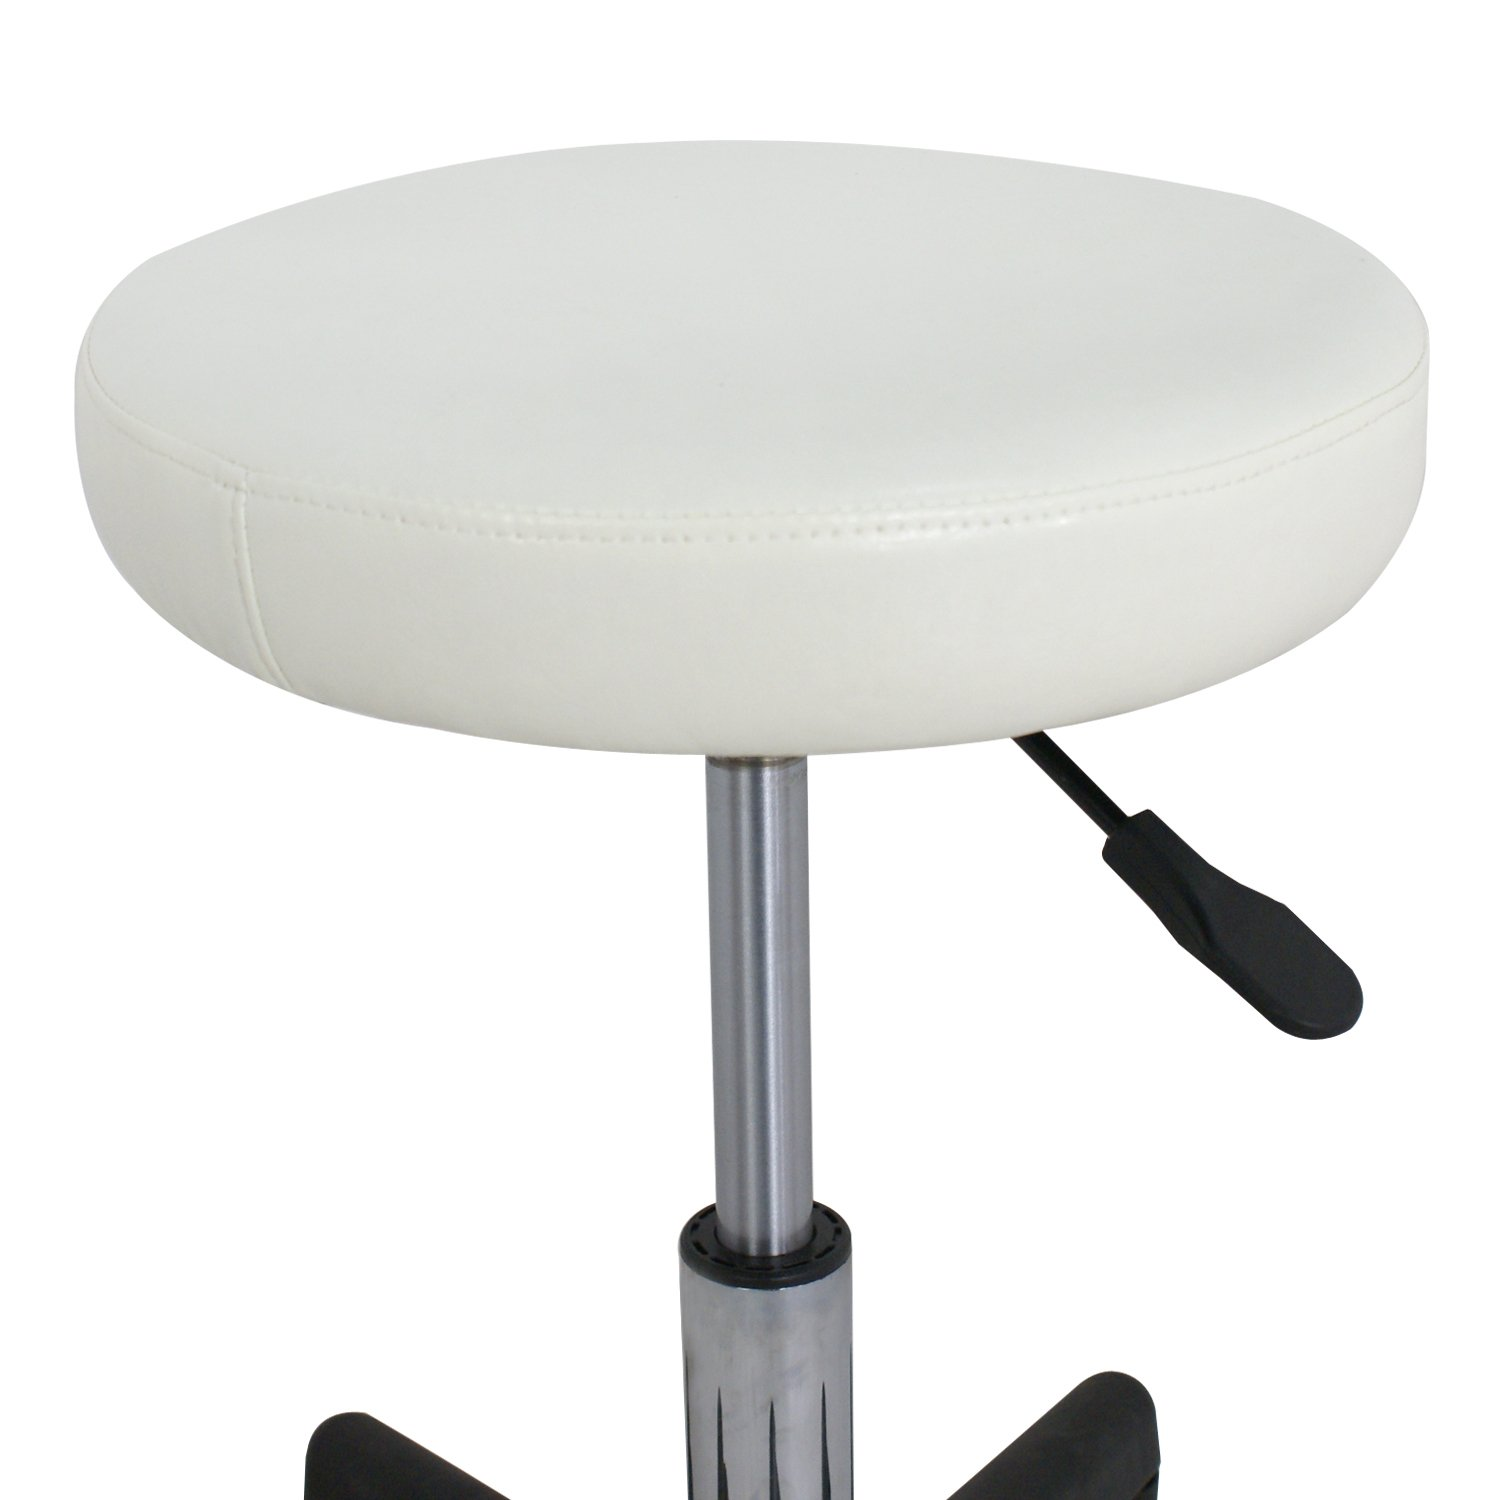 F2C Leather Adjustable Bar Stools Swivel Chairs Facial Massage Spa Salon Stool with Wheels White/Black (2PCS White) by F2C (Image #3)